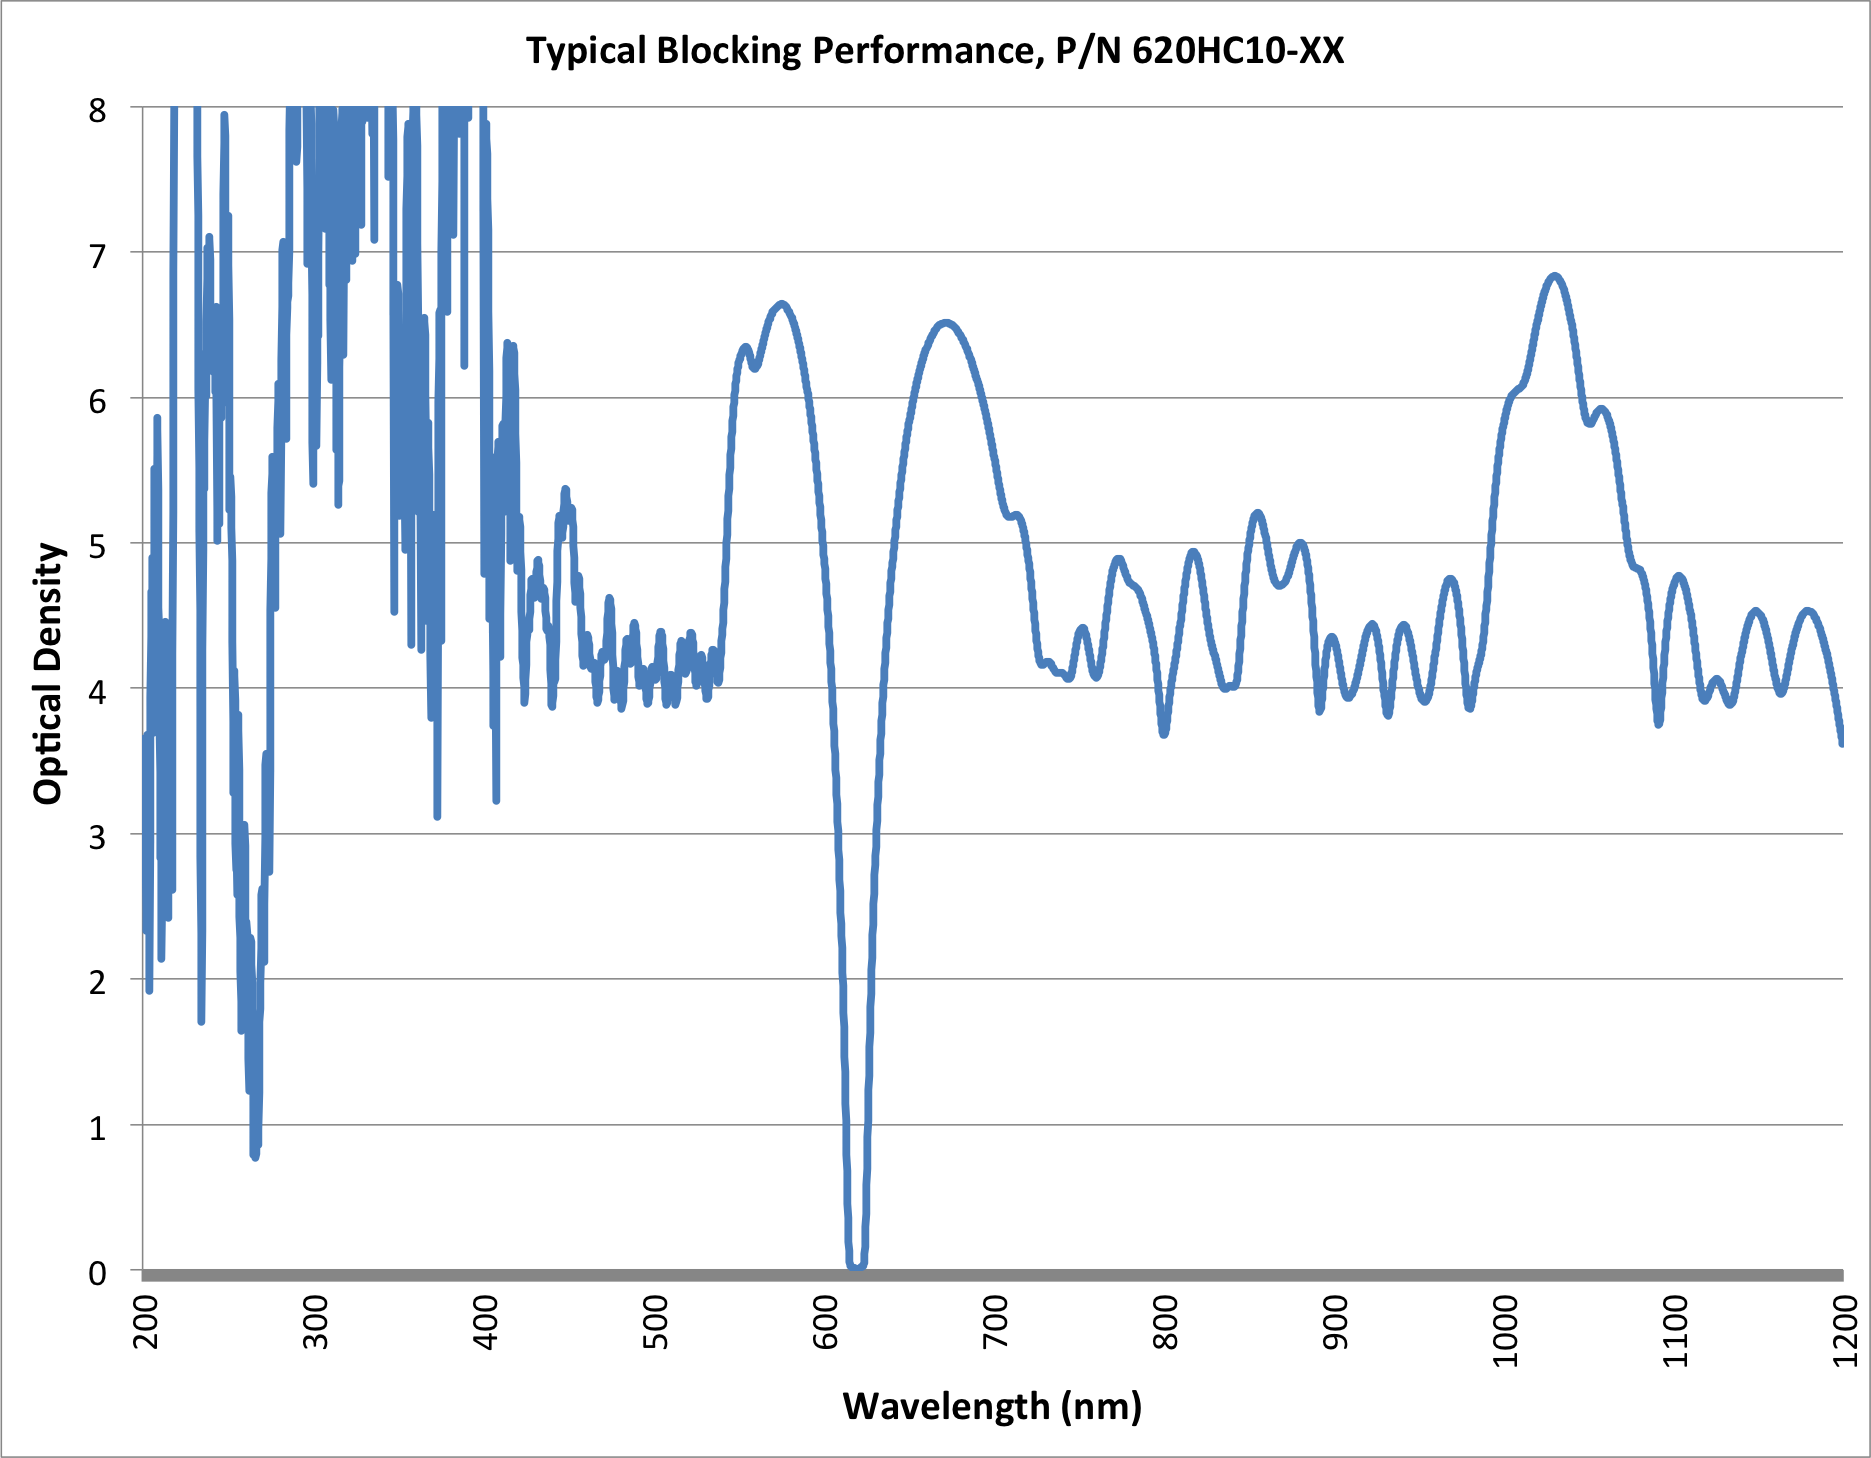 Graph of Andover's Hard-Coated Bandpass Filter Blocking Performance